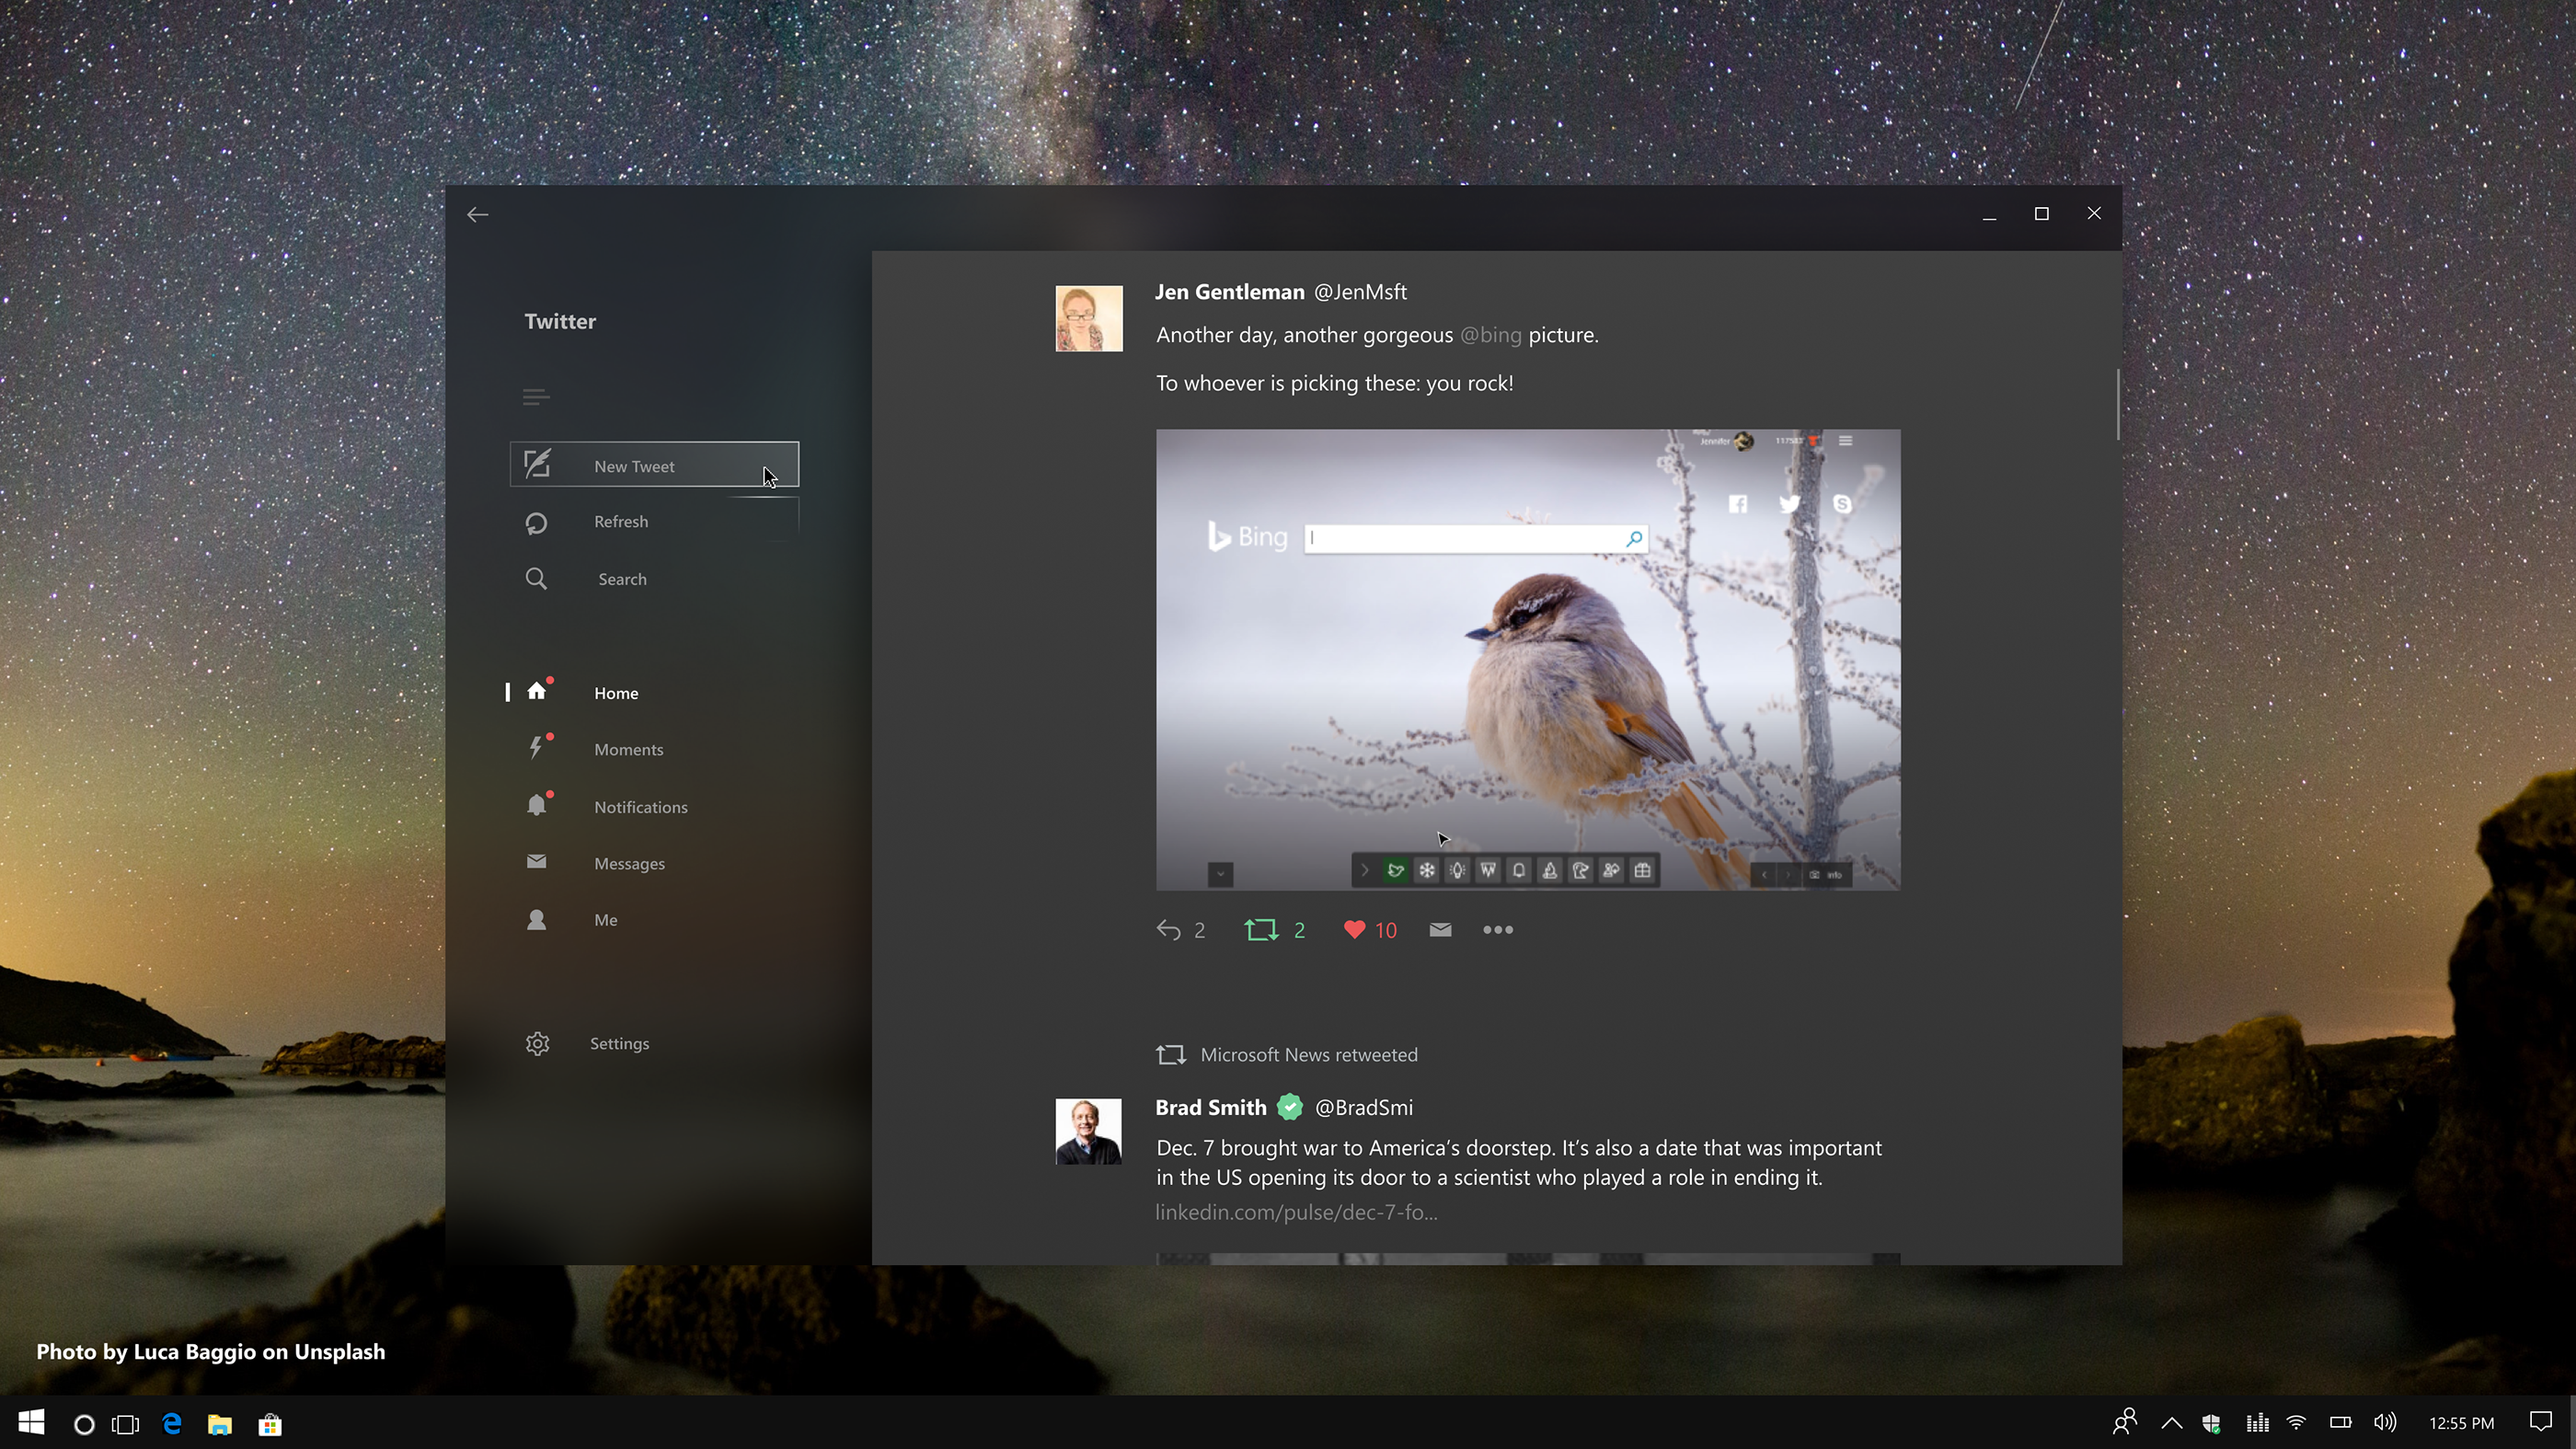 Windows 10 Fluent Design Twitter App Concept on Behance | fluent